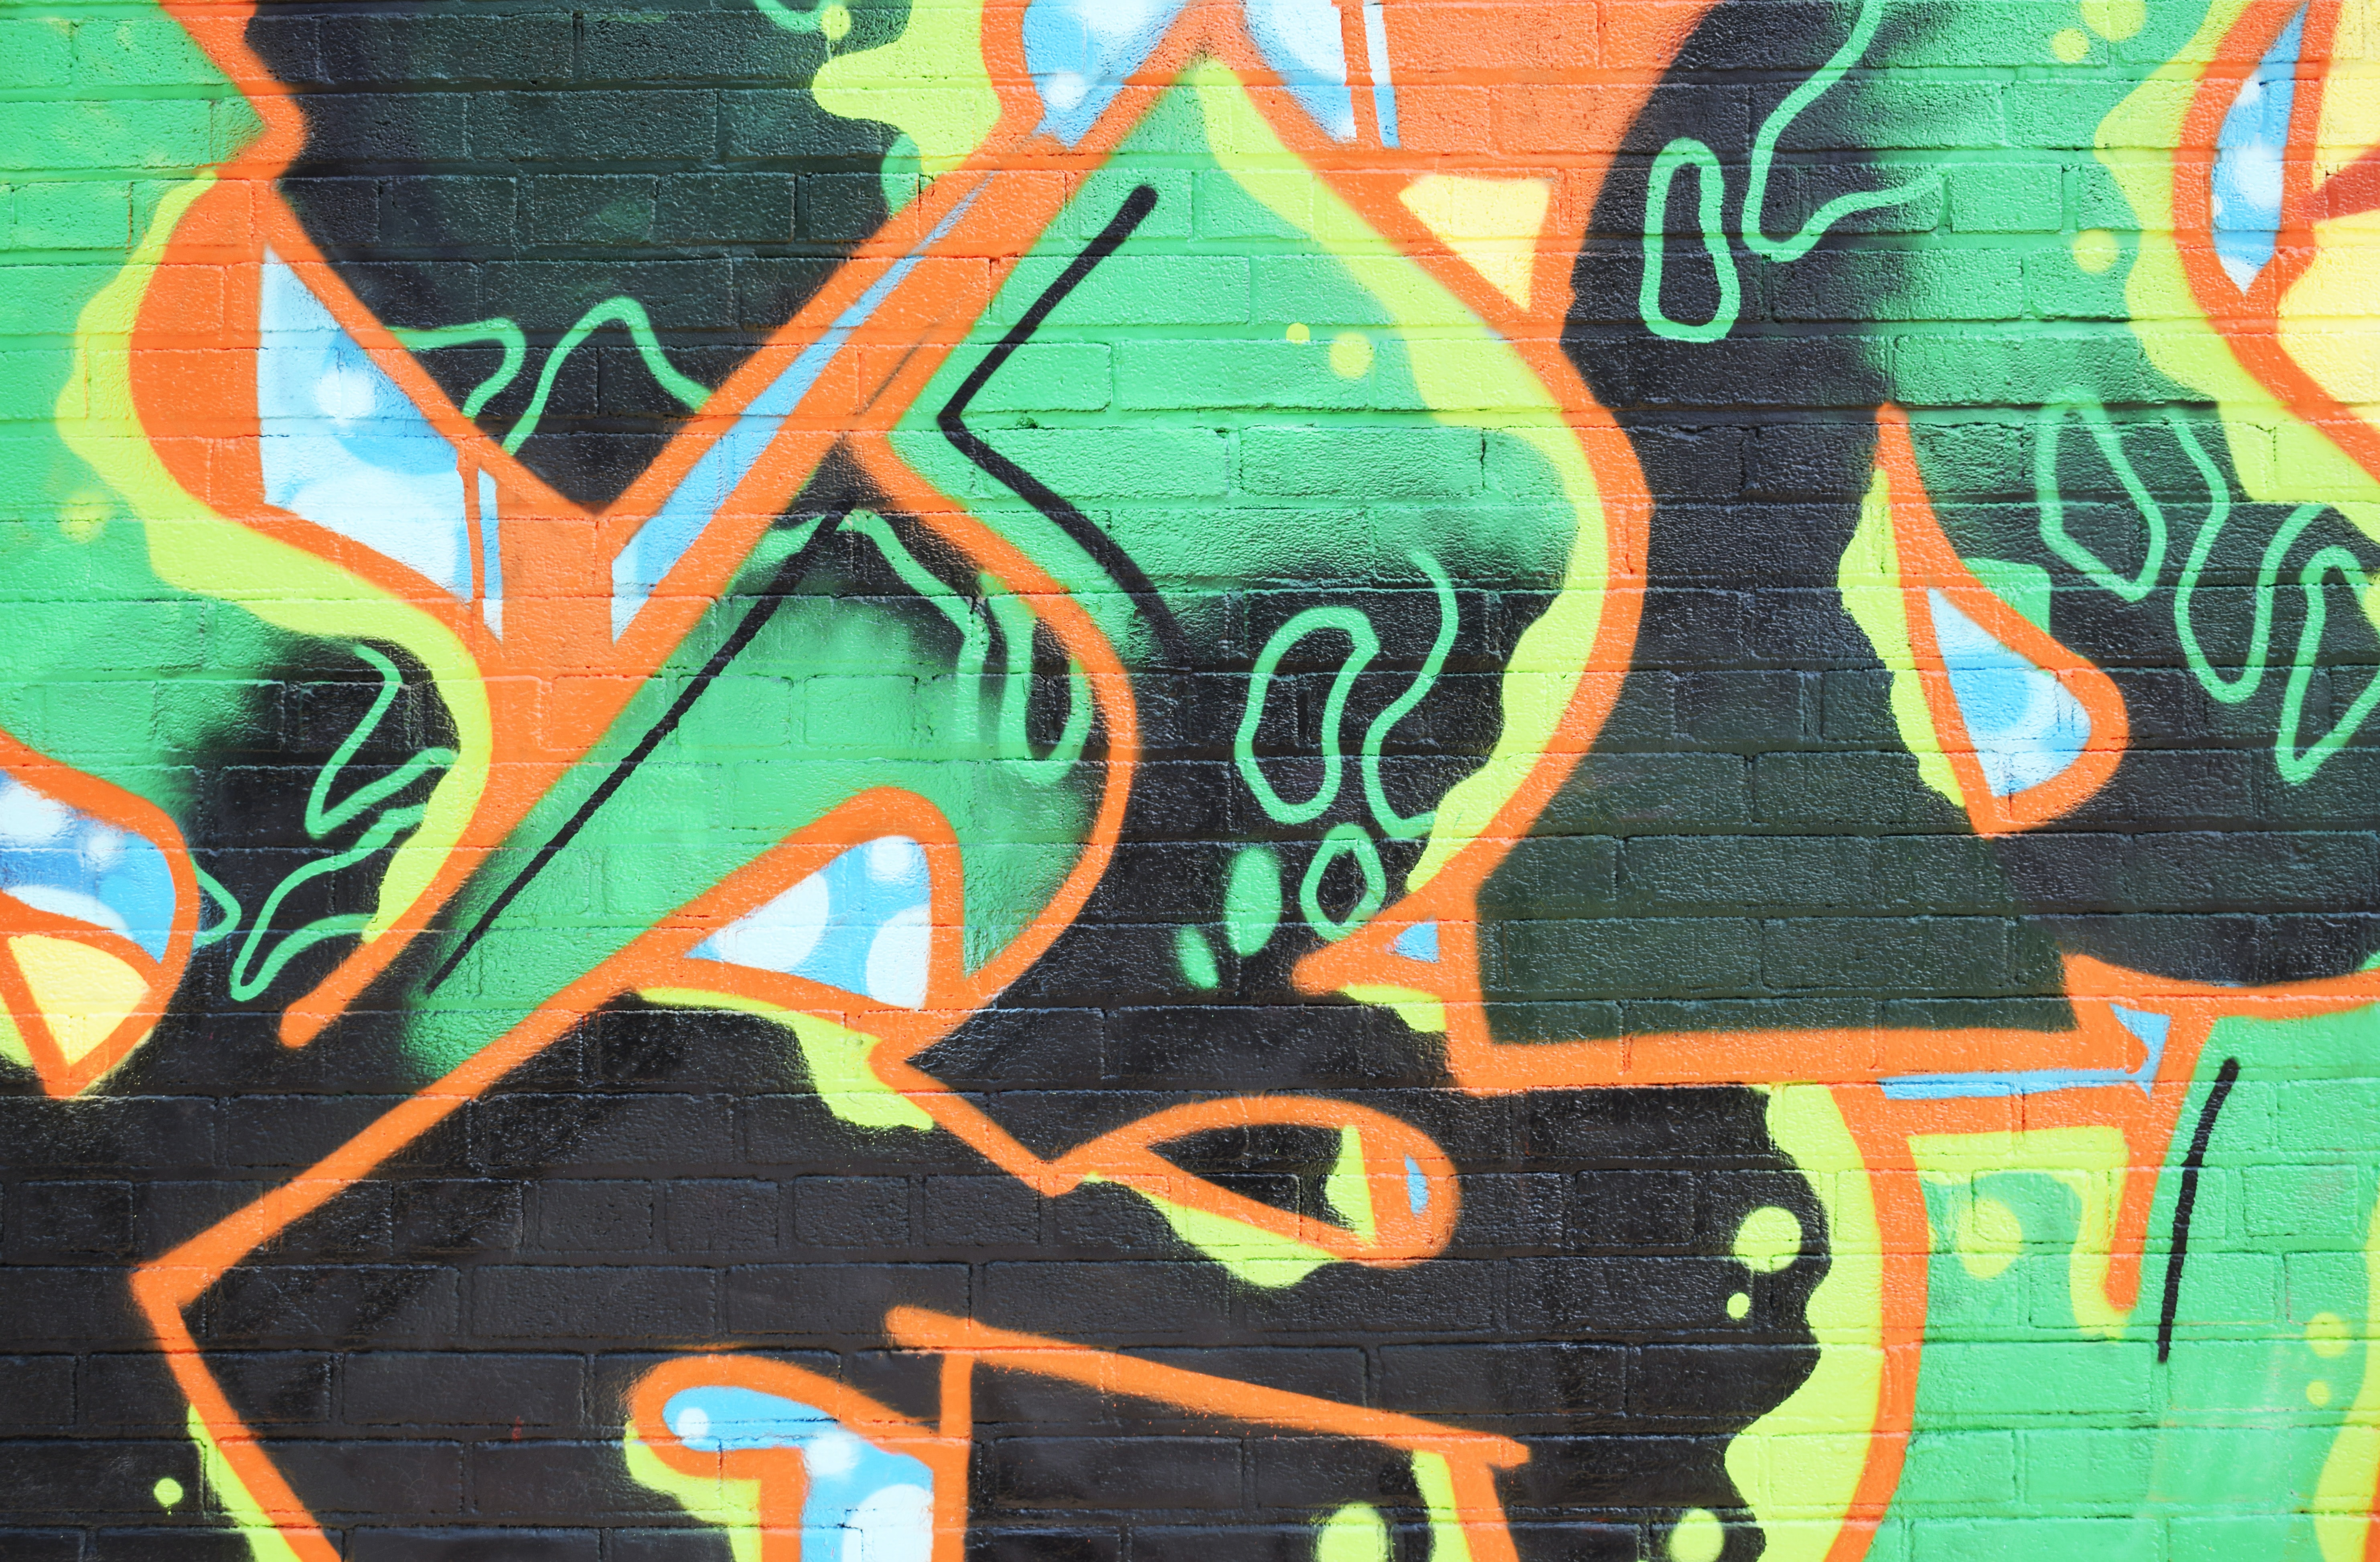 multicolored graffiti during daytime